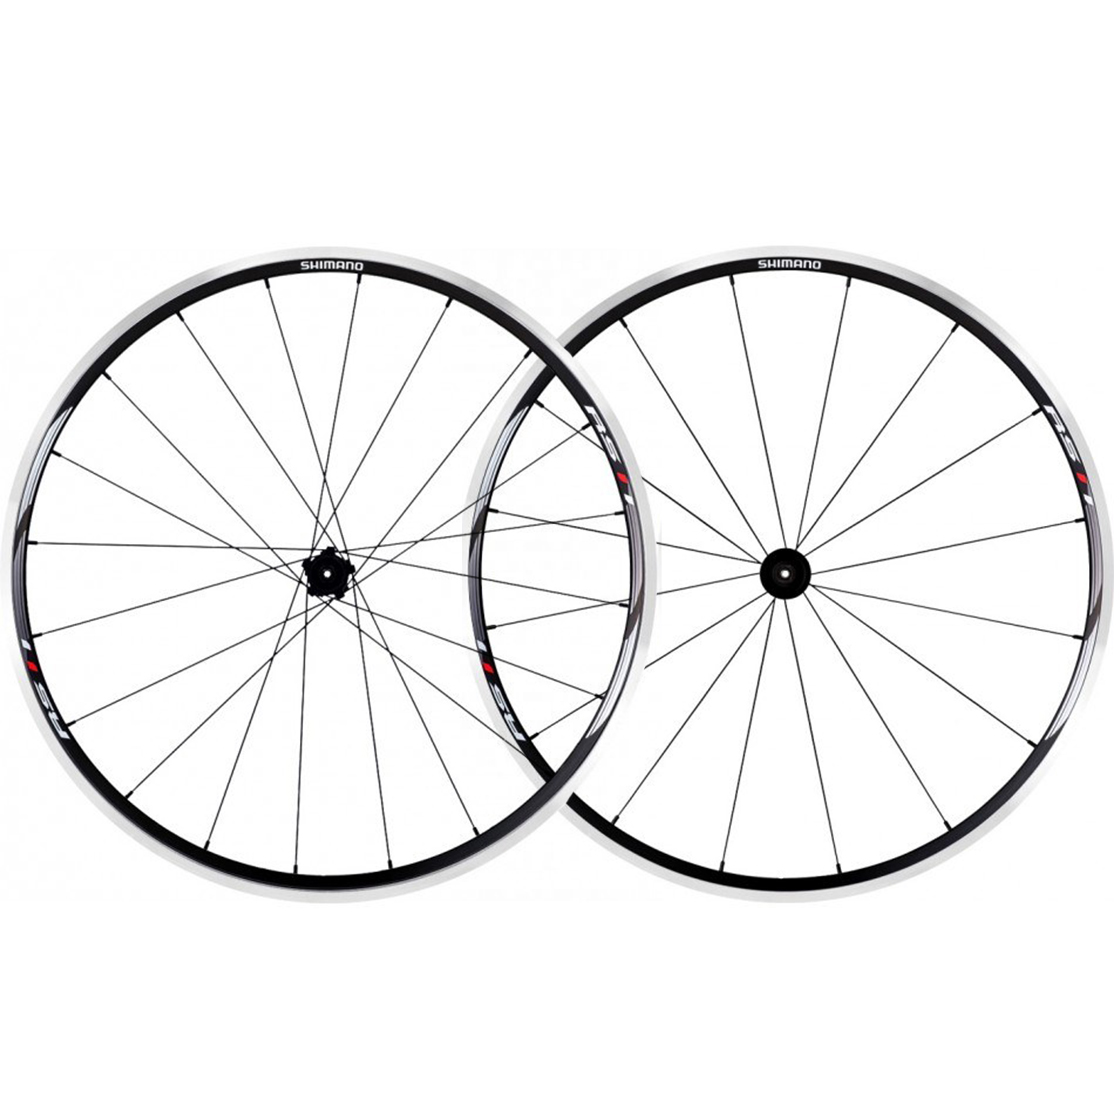 a8a2d5de4e7 Shimano WH-RS11 Clincher Road Wheelset | Merlin Cycles